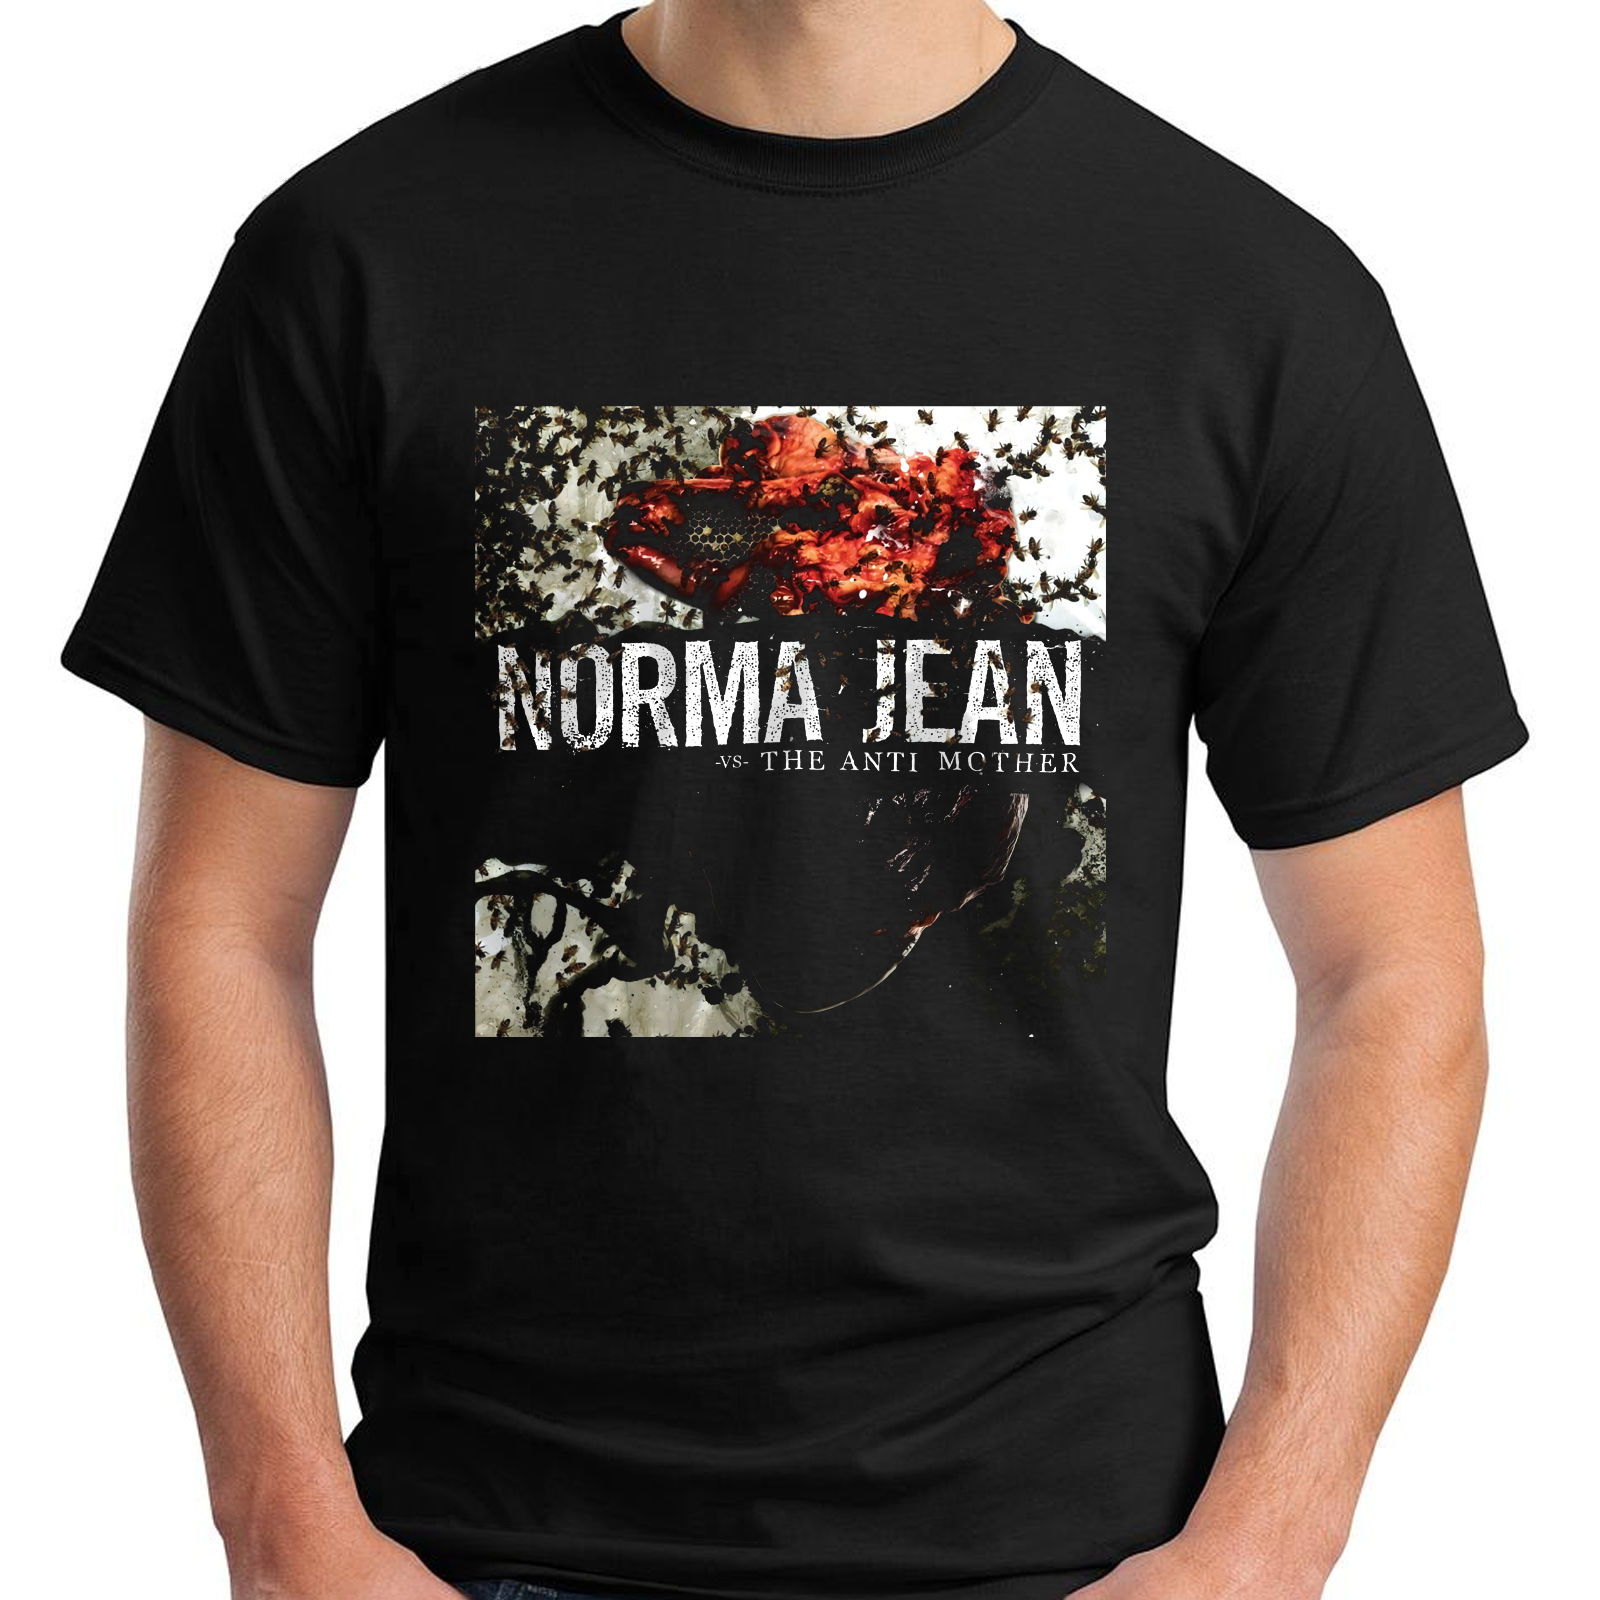 NORMA JEAN The Anti Mother Metalcore Band Sleeve Black Mens T-Shirt Size S-3XL 100% Cotton Short Sleeve Tops Tee T Shirts